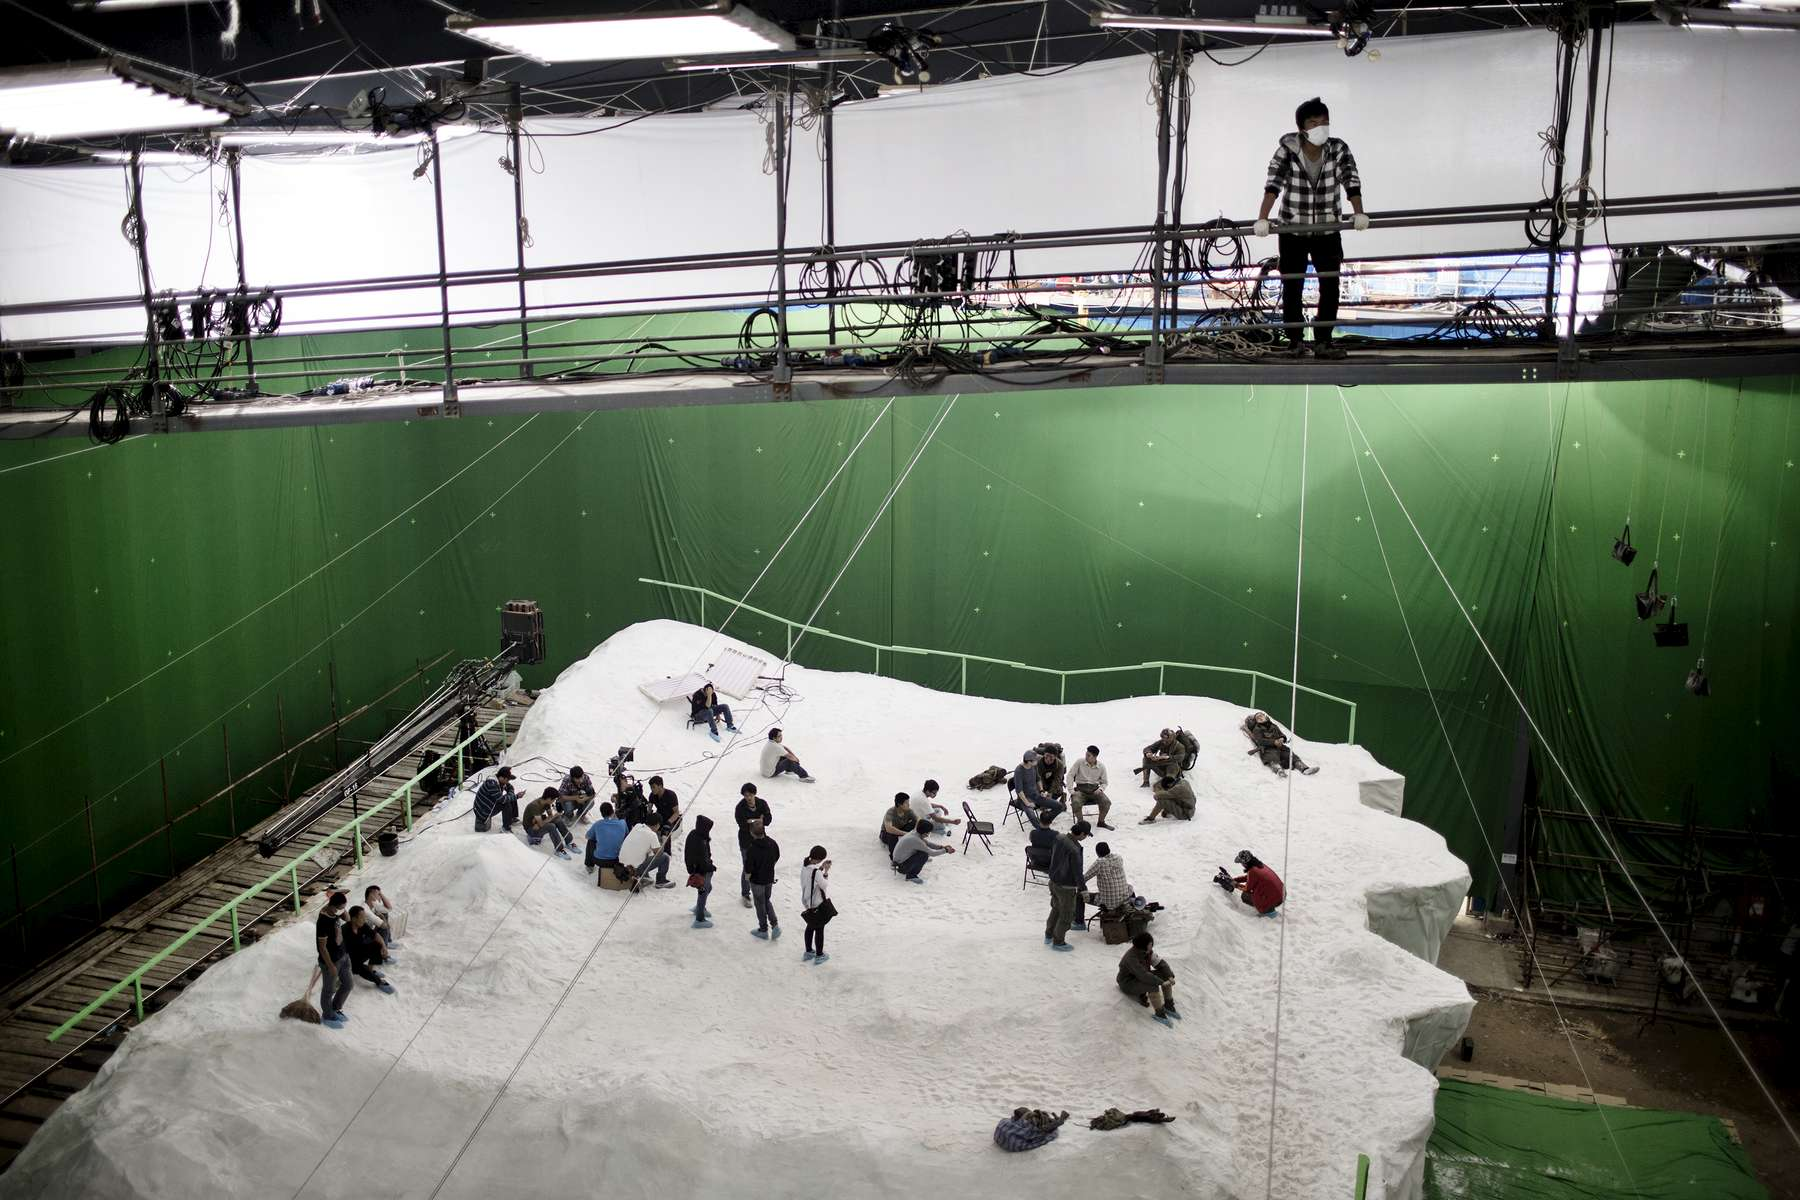 Movie set of the Lu Chuan new movie which is one of the biggest co-production movie in China this year, September 2014